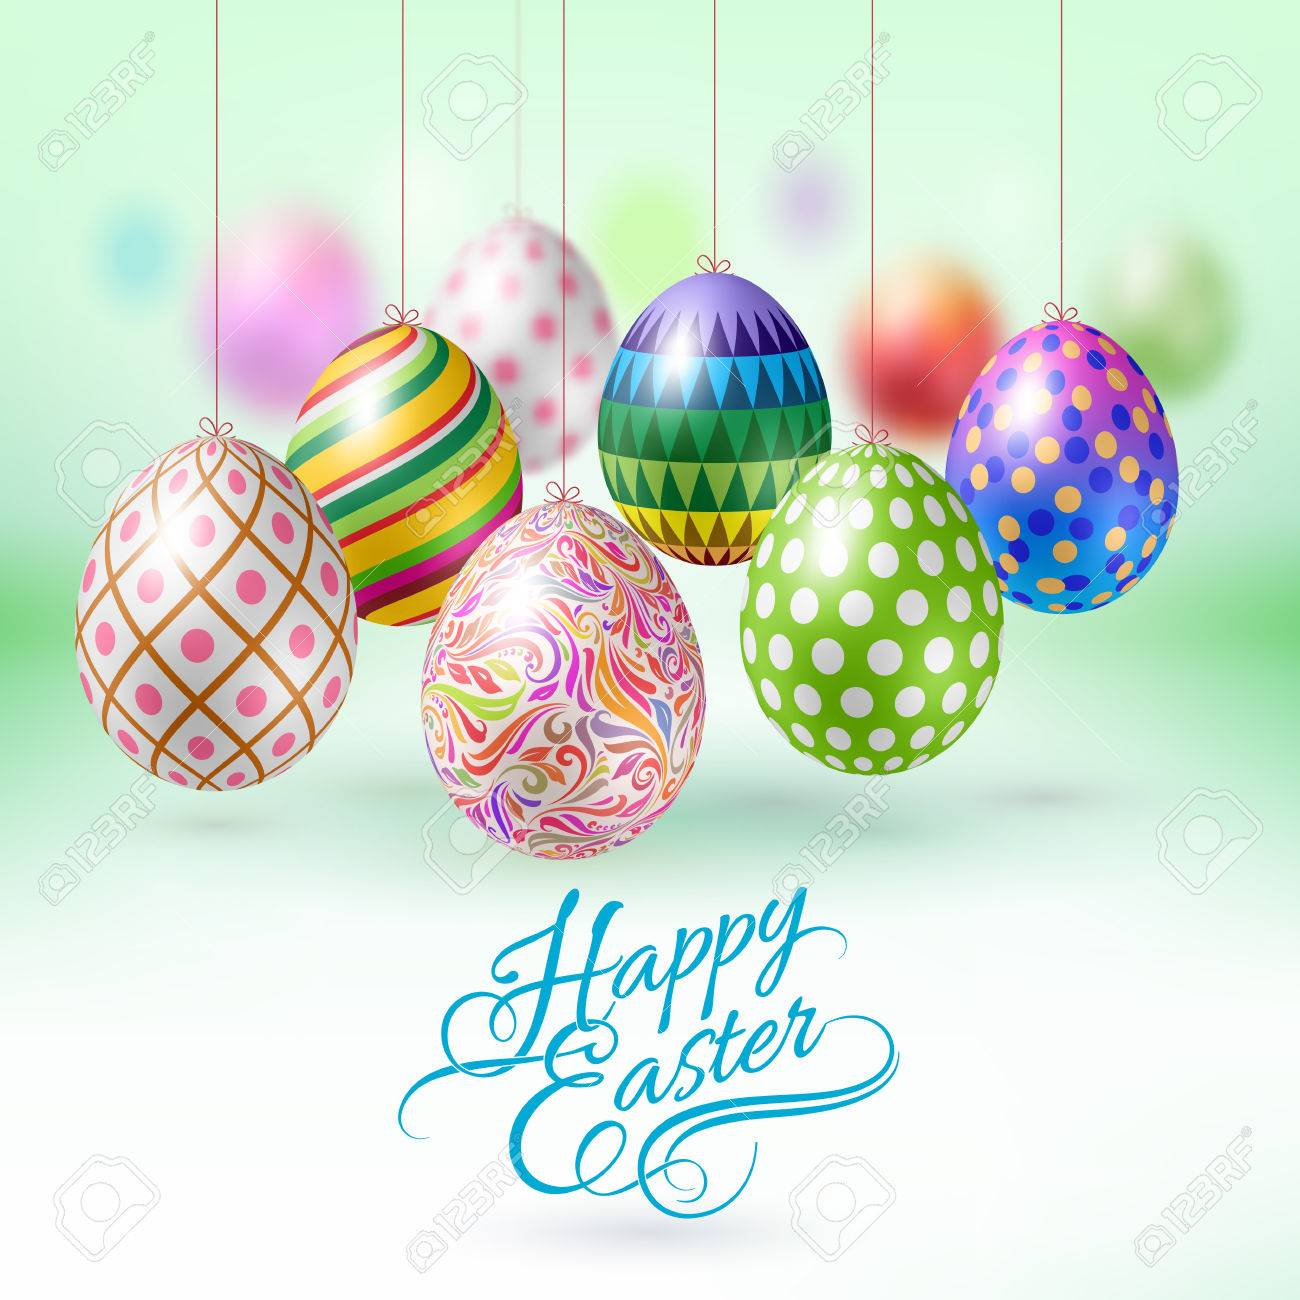 Happy Easter Greeting Card with Hanging Easter Eggs - 53908252